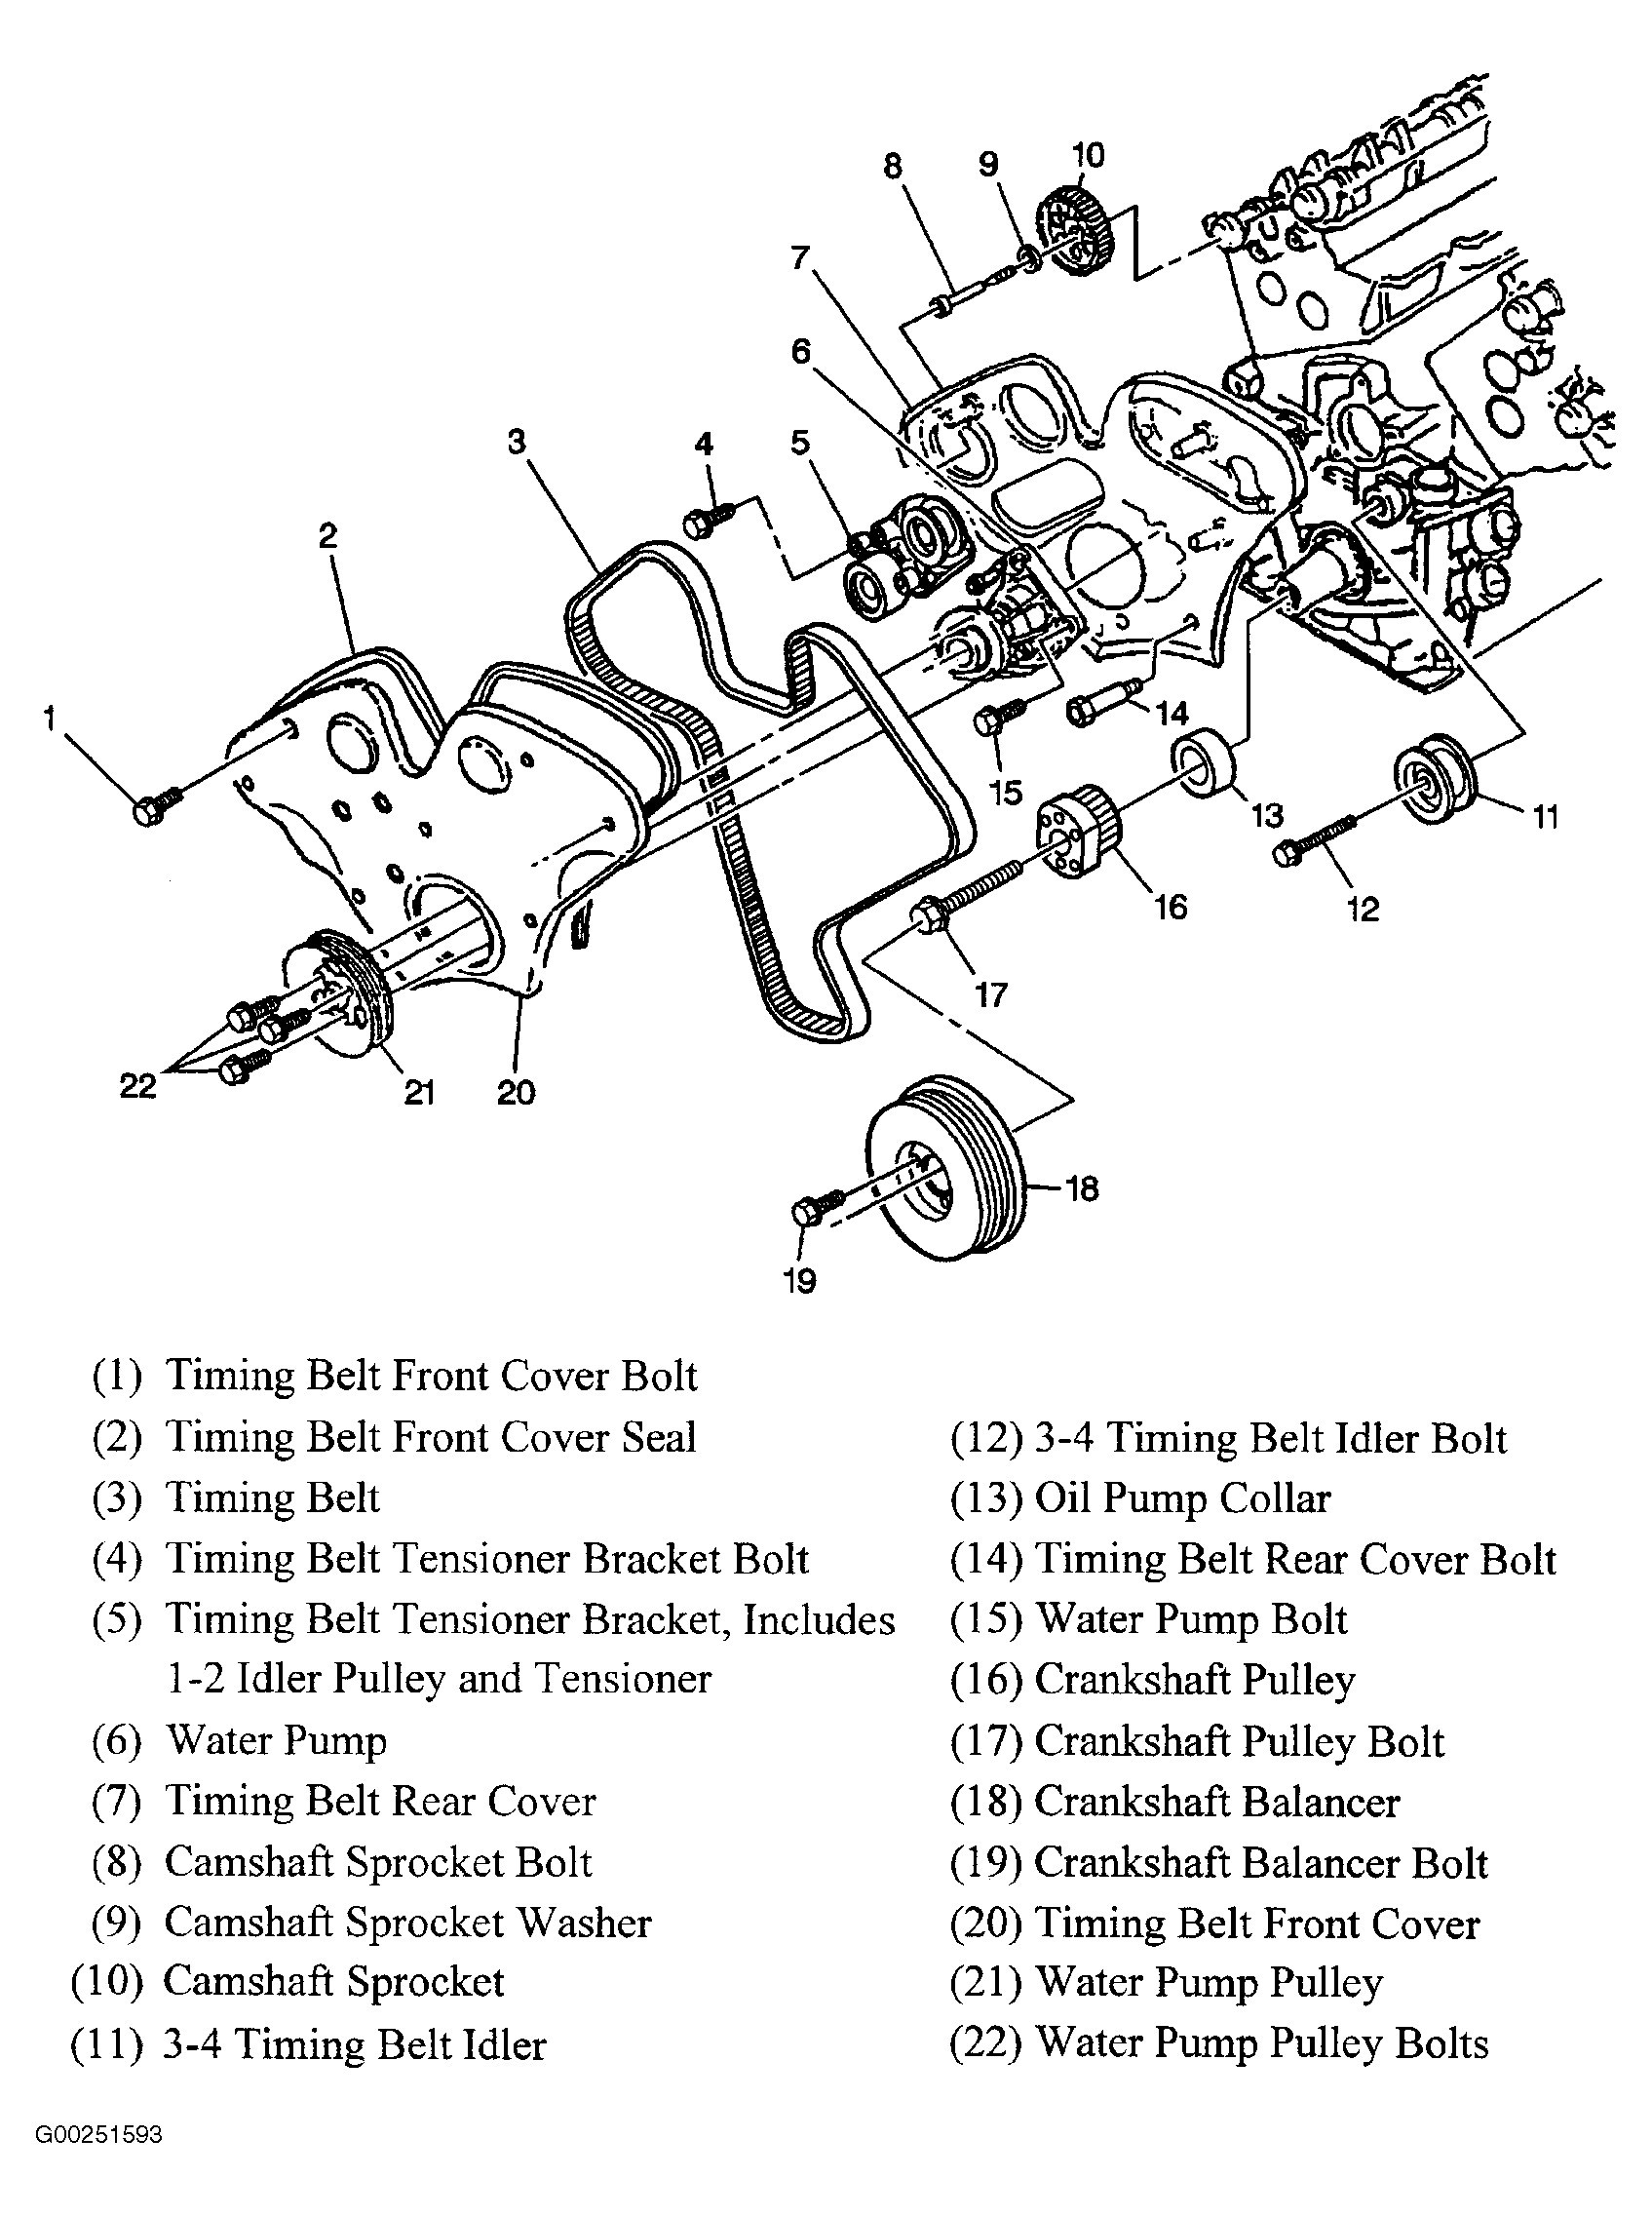 1999 Toyota Corolla Parts Diagram Www Topsimages Com 2001 Jeep Grand  Cherokee Parts Diagram 1999 Toyota Corolla Parts Diagram